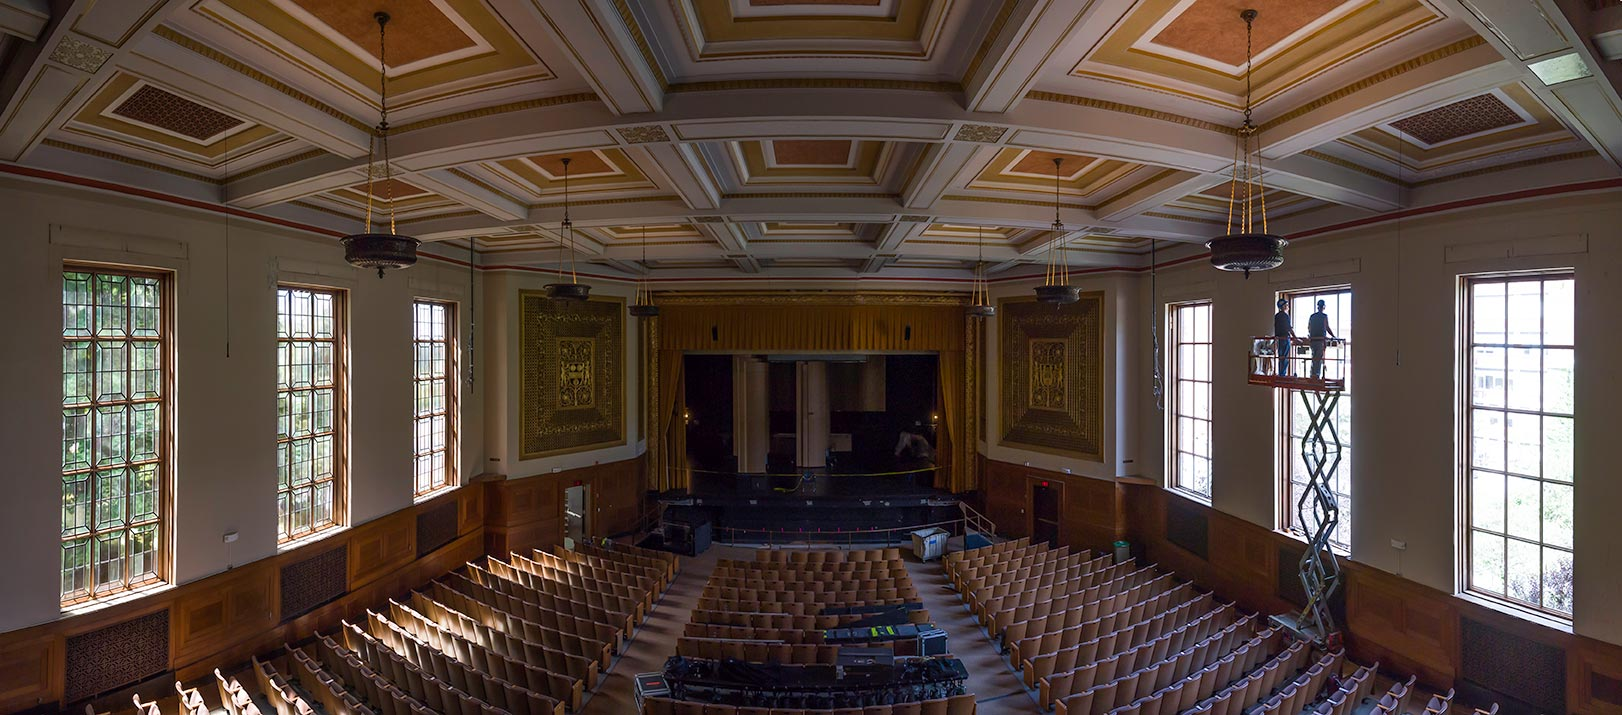 panoramic image of Strong Auditorium and its double set of windows